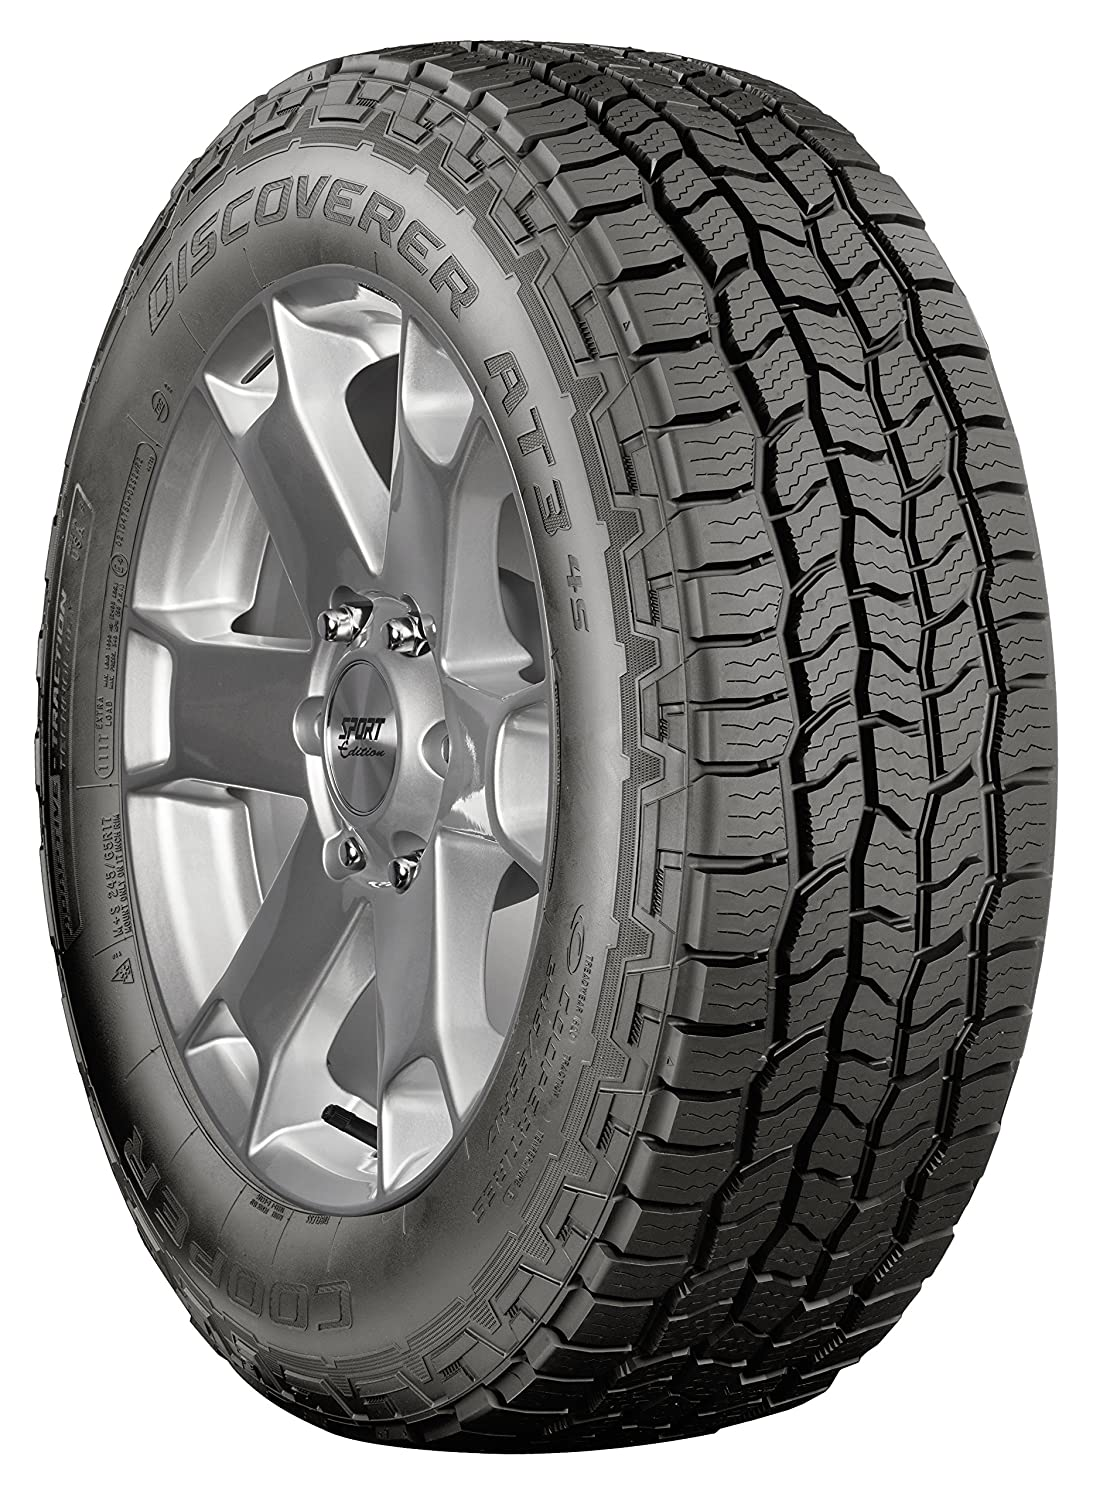 New Cooper Discoverer A/T3 4S All Terrain Tire - 235/65R17XL 235 65 17 108T 90000032688